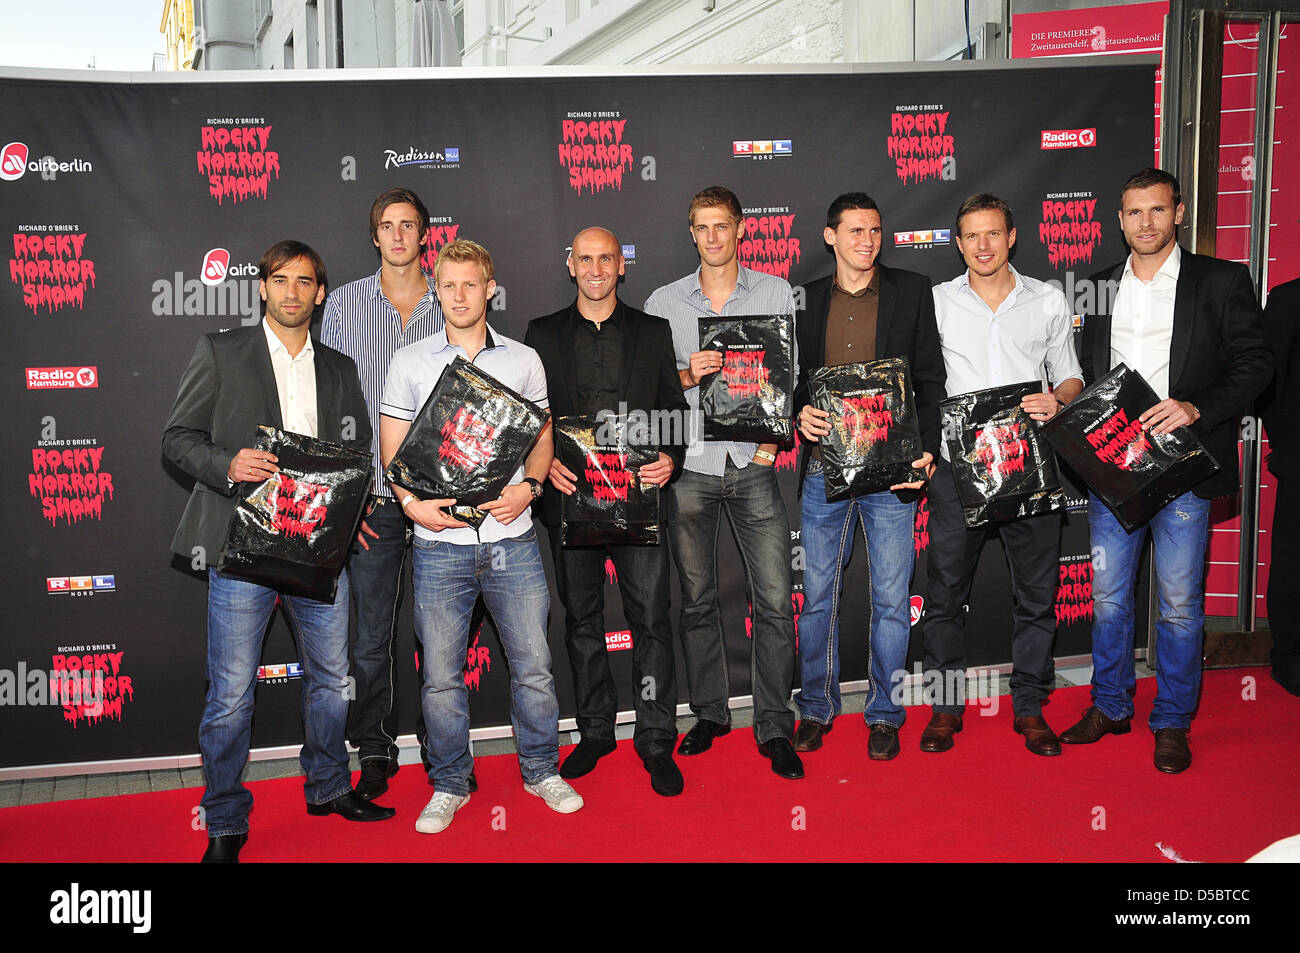 St Pauli Fussballspieler at the premiere of the musical 'Rocky Horror Show'. Hamburg, Germany - 27.07.2011. - Stock Image